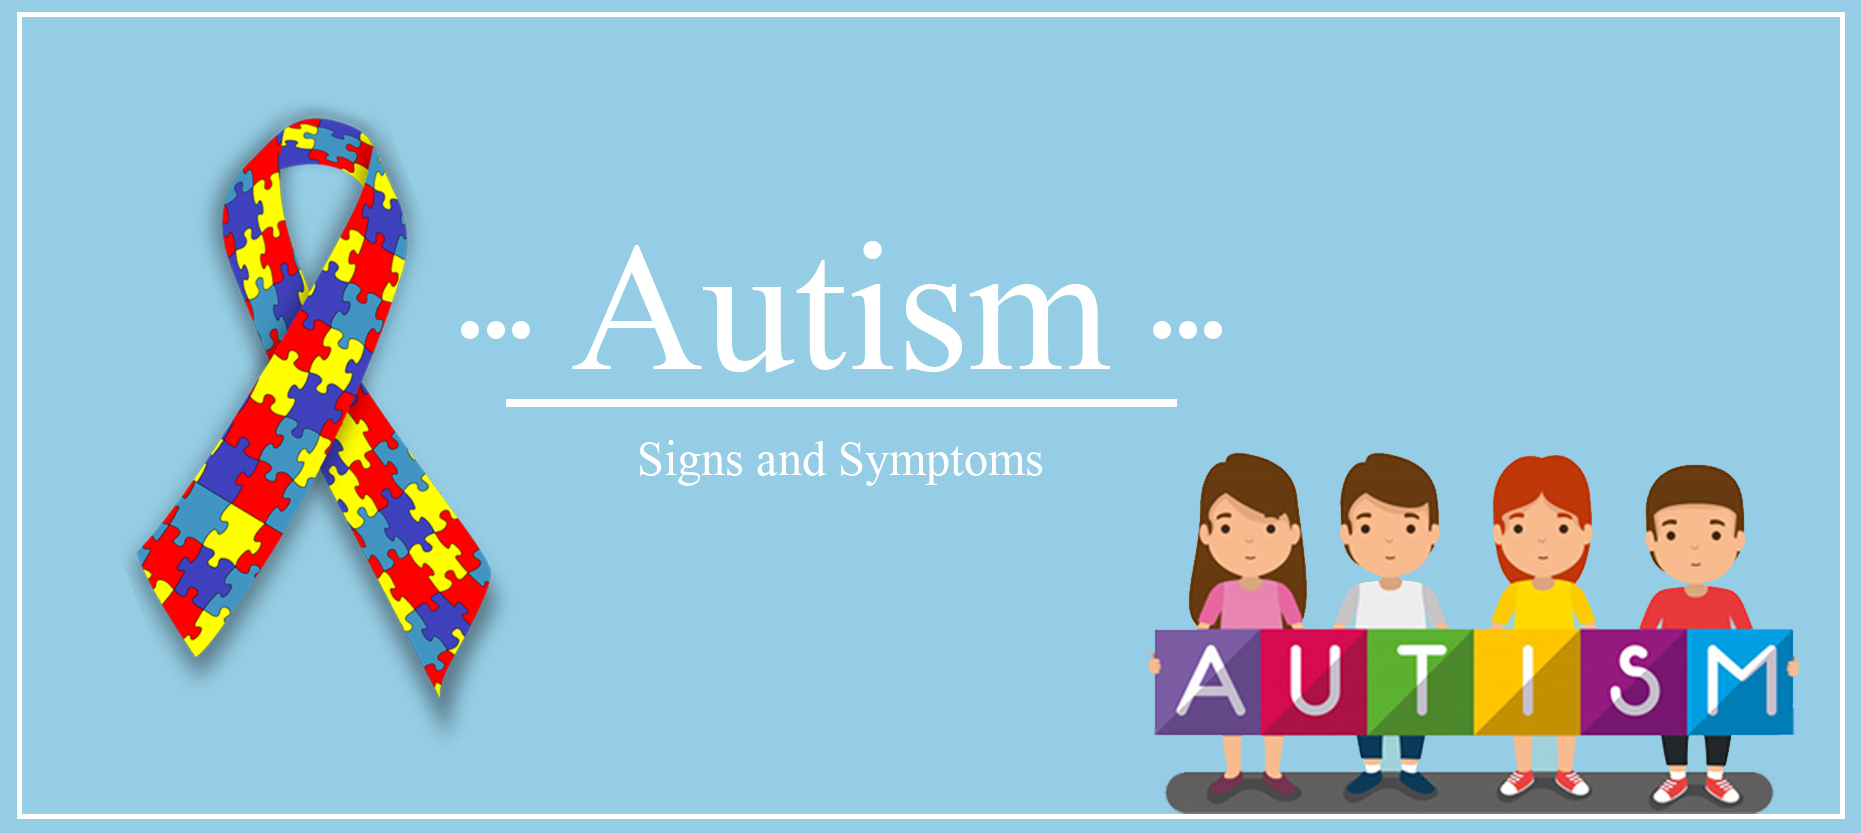 Autism Spectrum Disorder – Signs and Symptoms